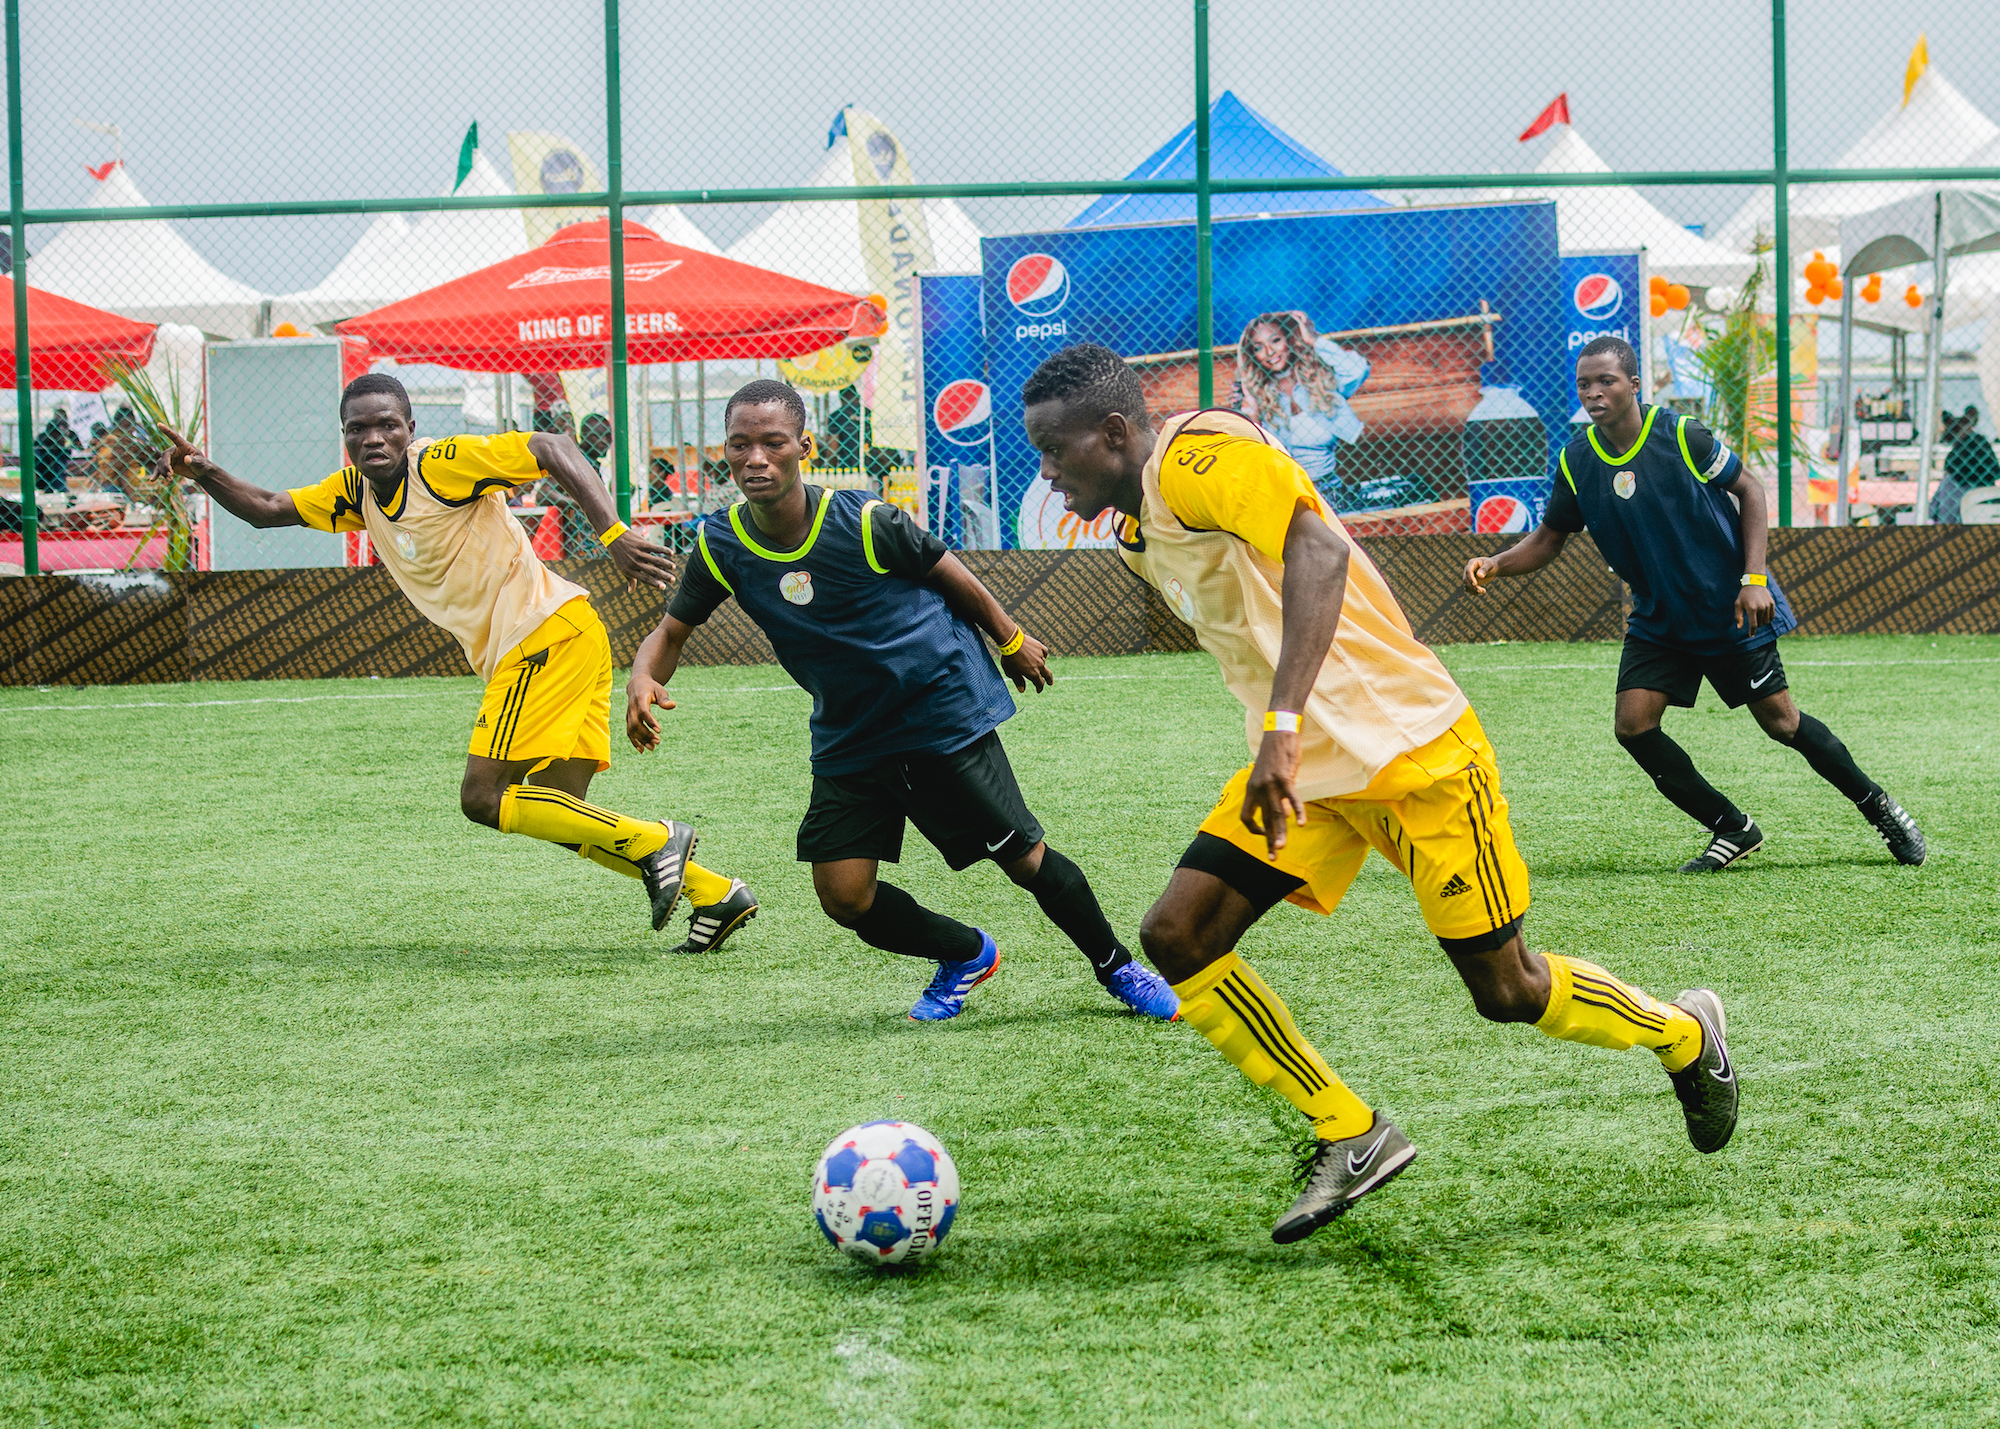 Gidi Culture Festival in Lagos crowd football